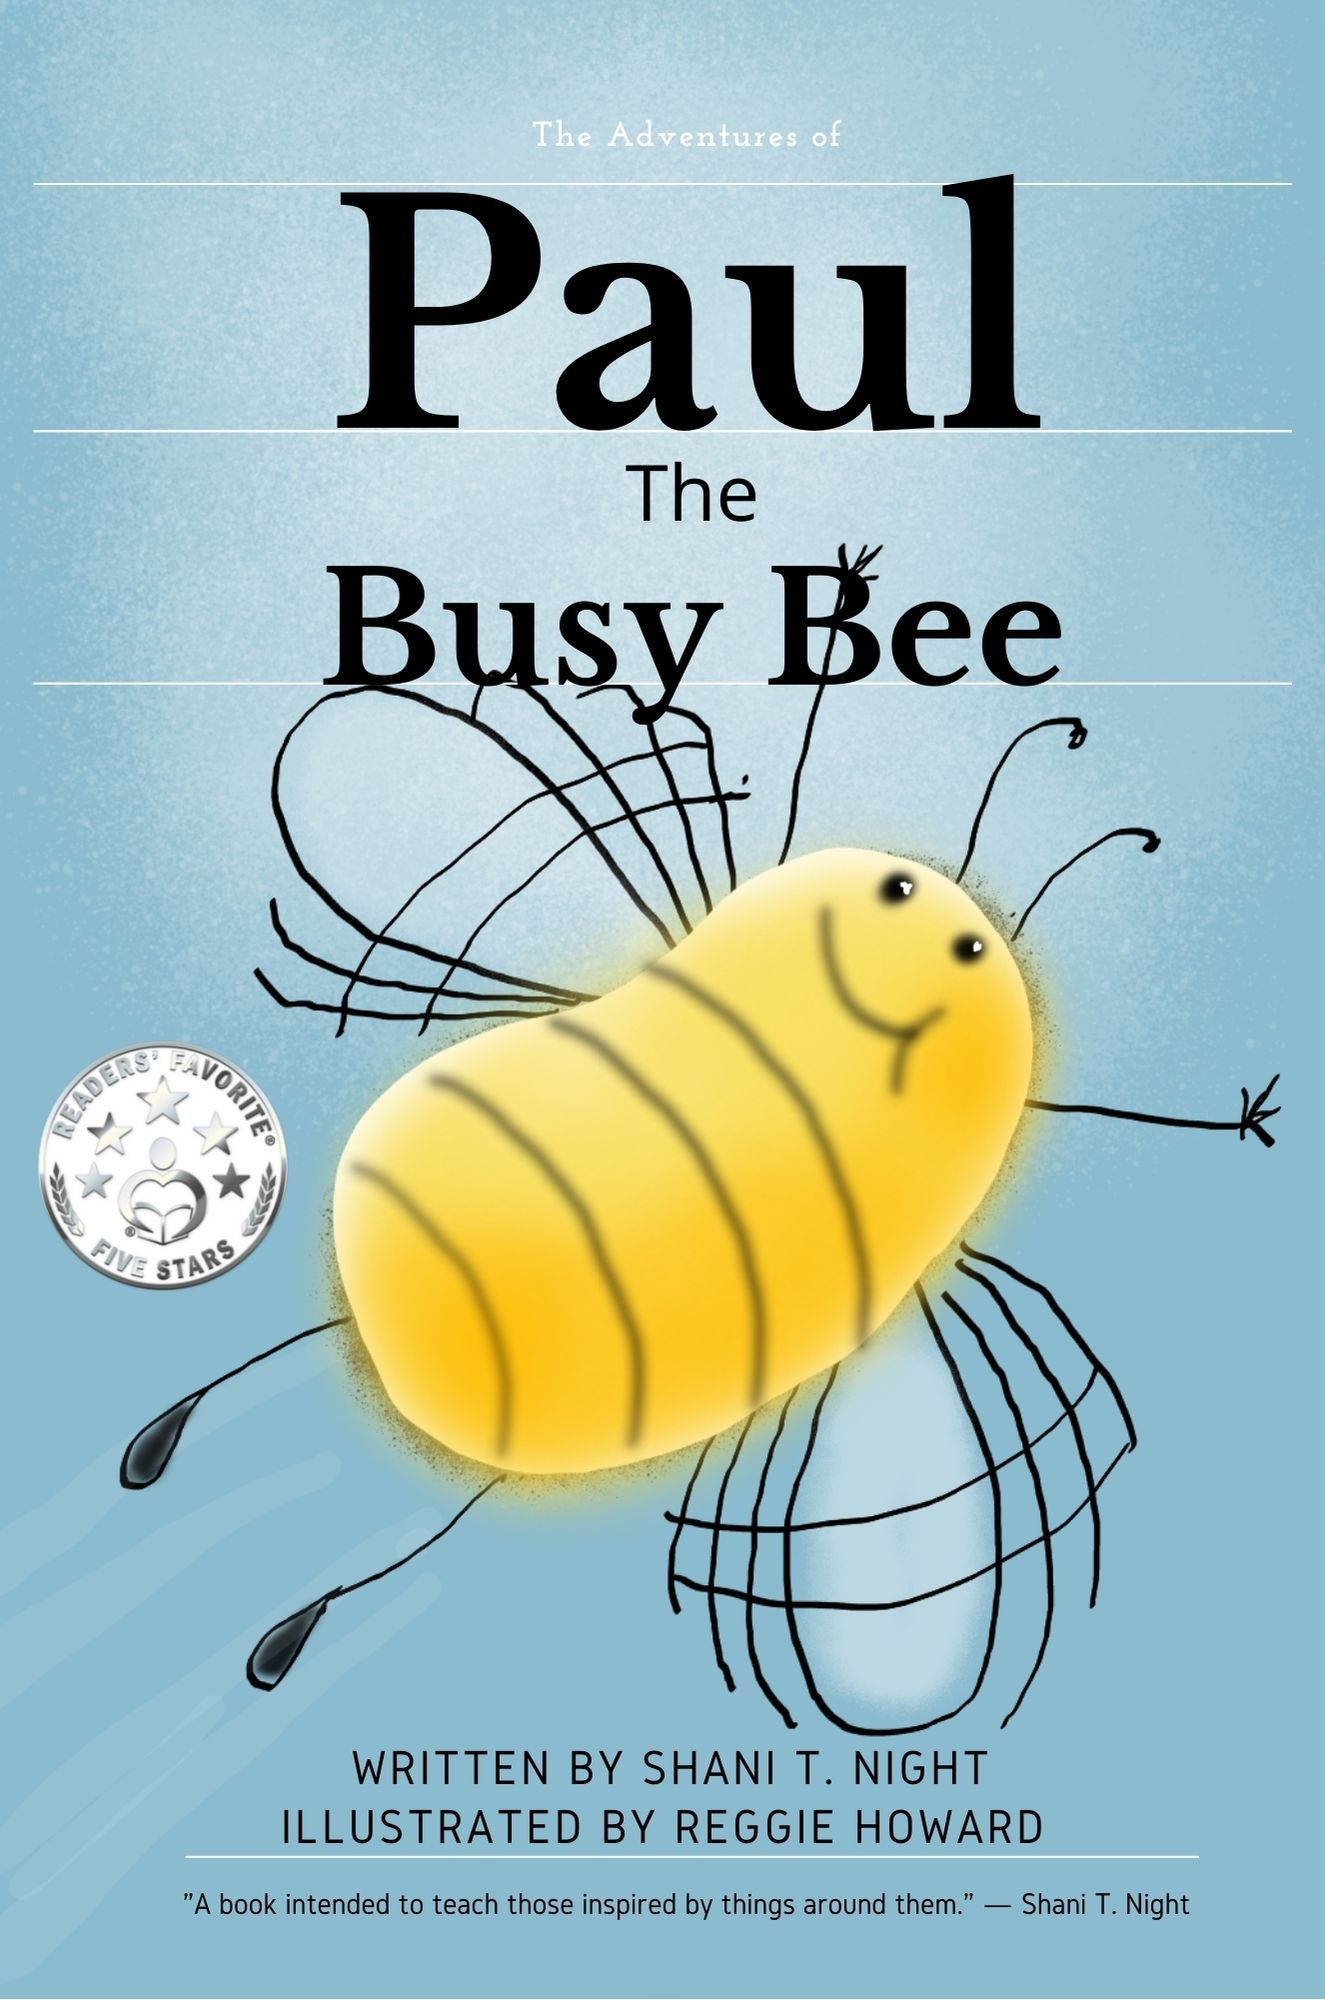 Paul The Busy Bee's Book Image